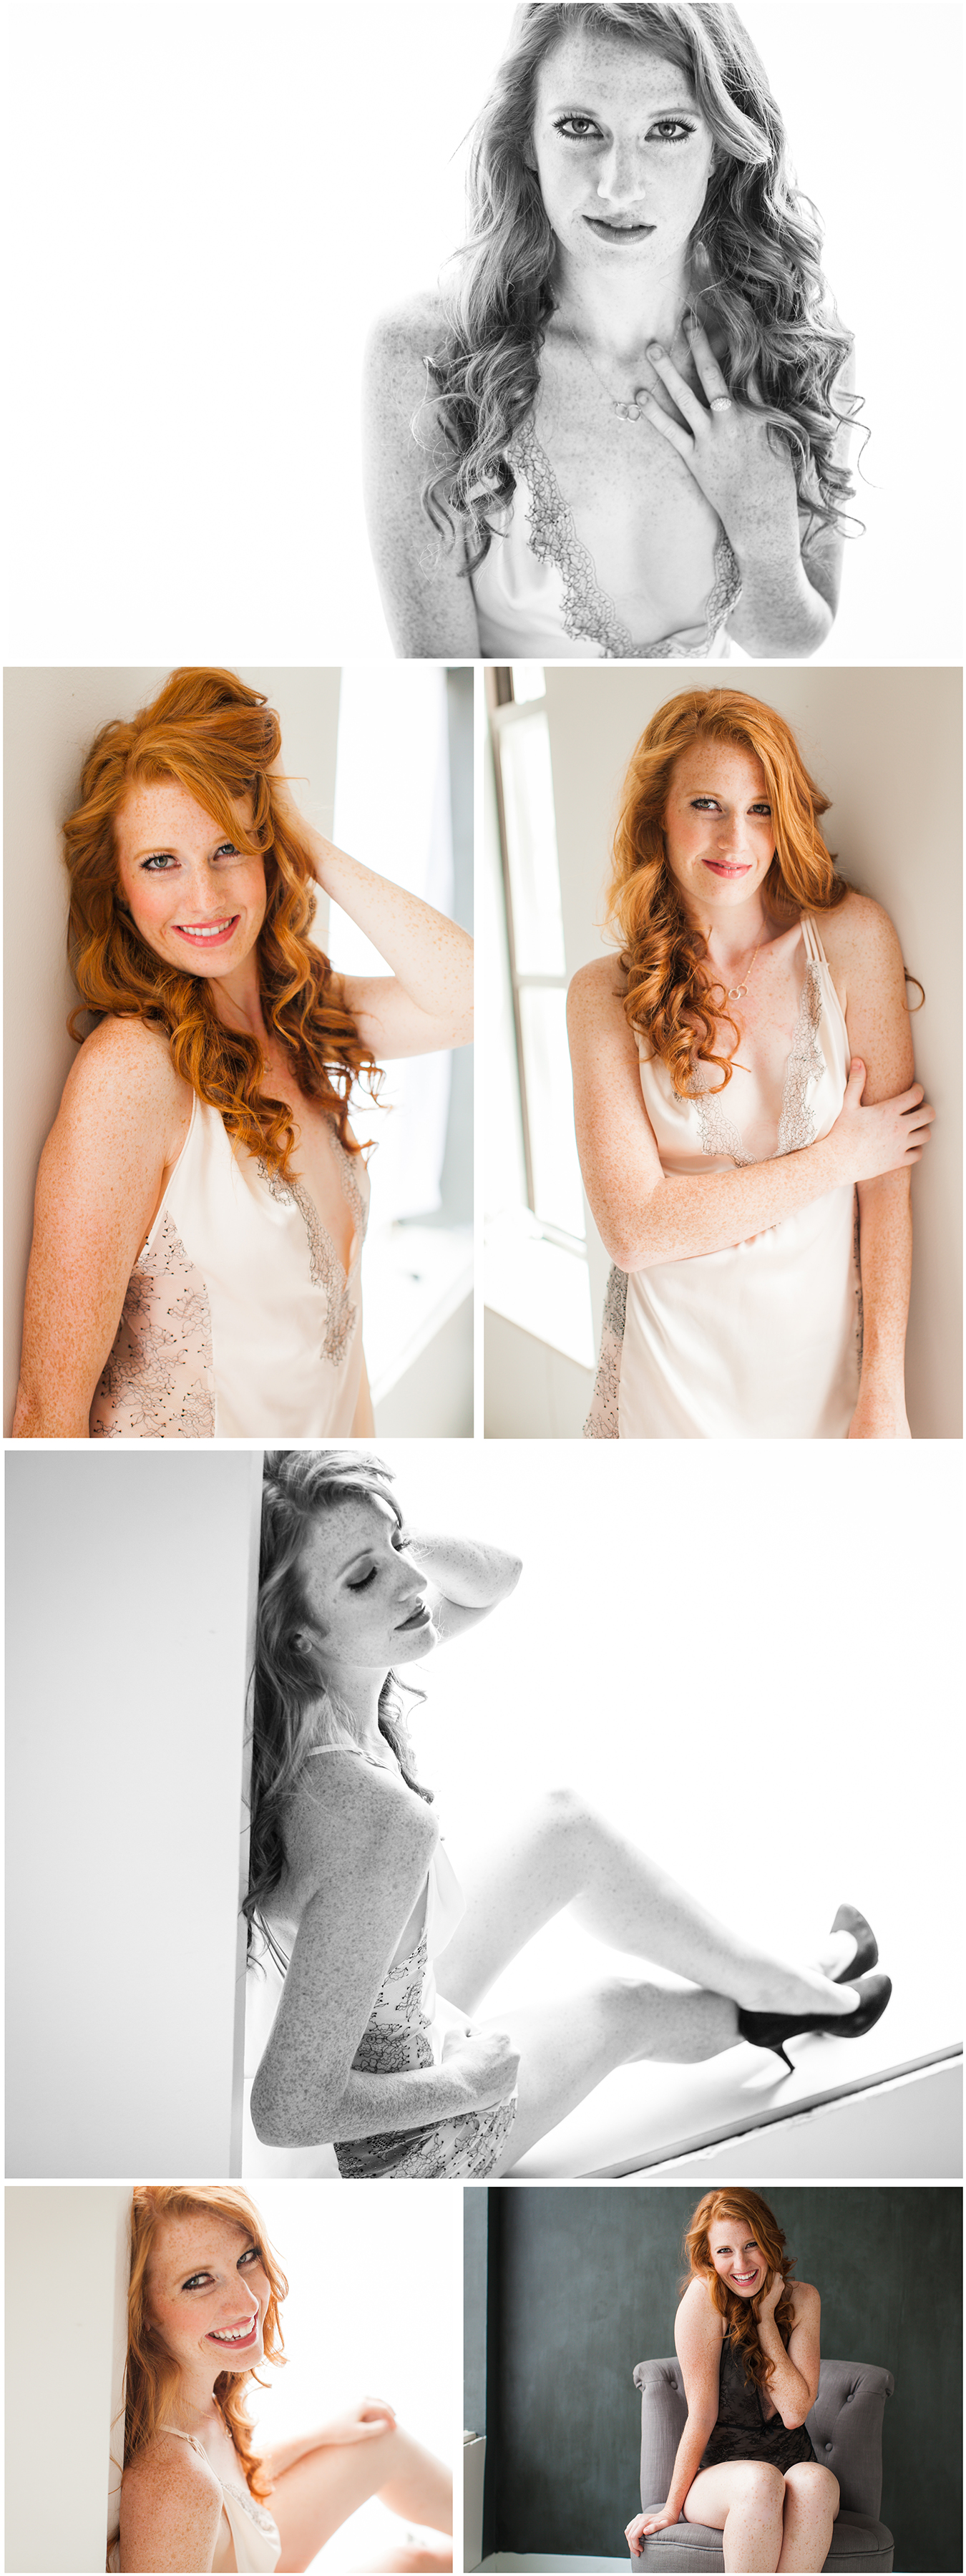 Boudoir Session Lafayette Indiana Pearl Photo & Design 2